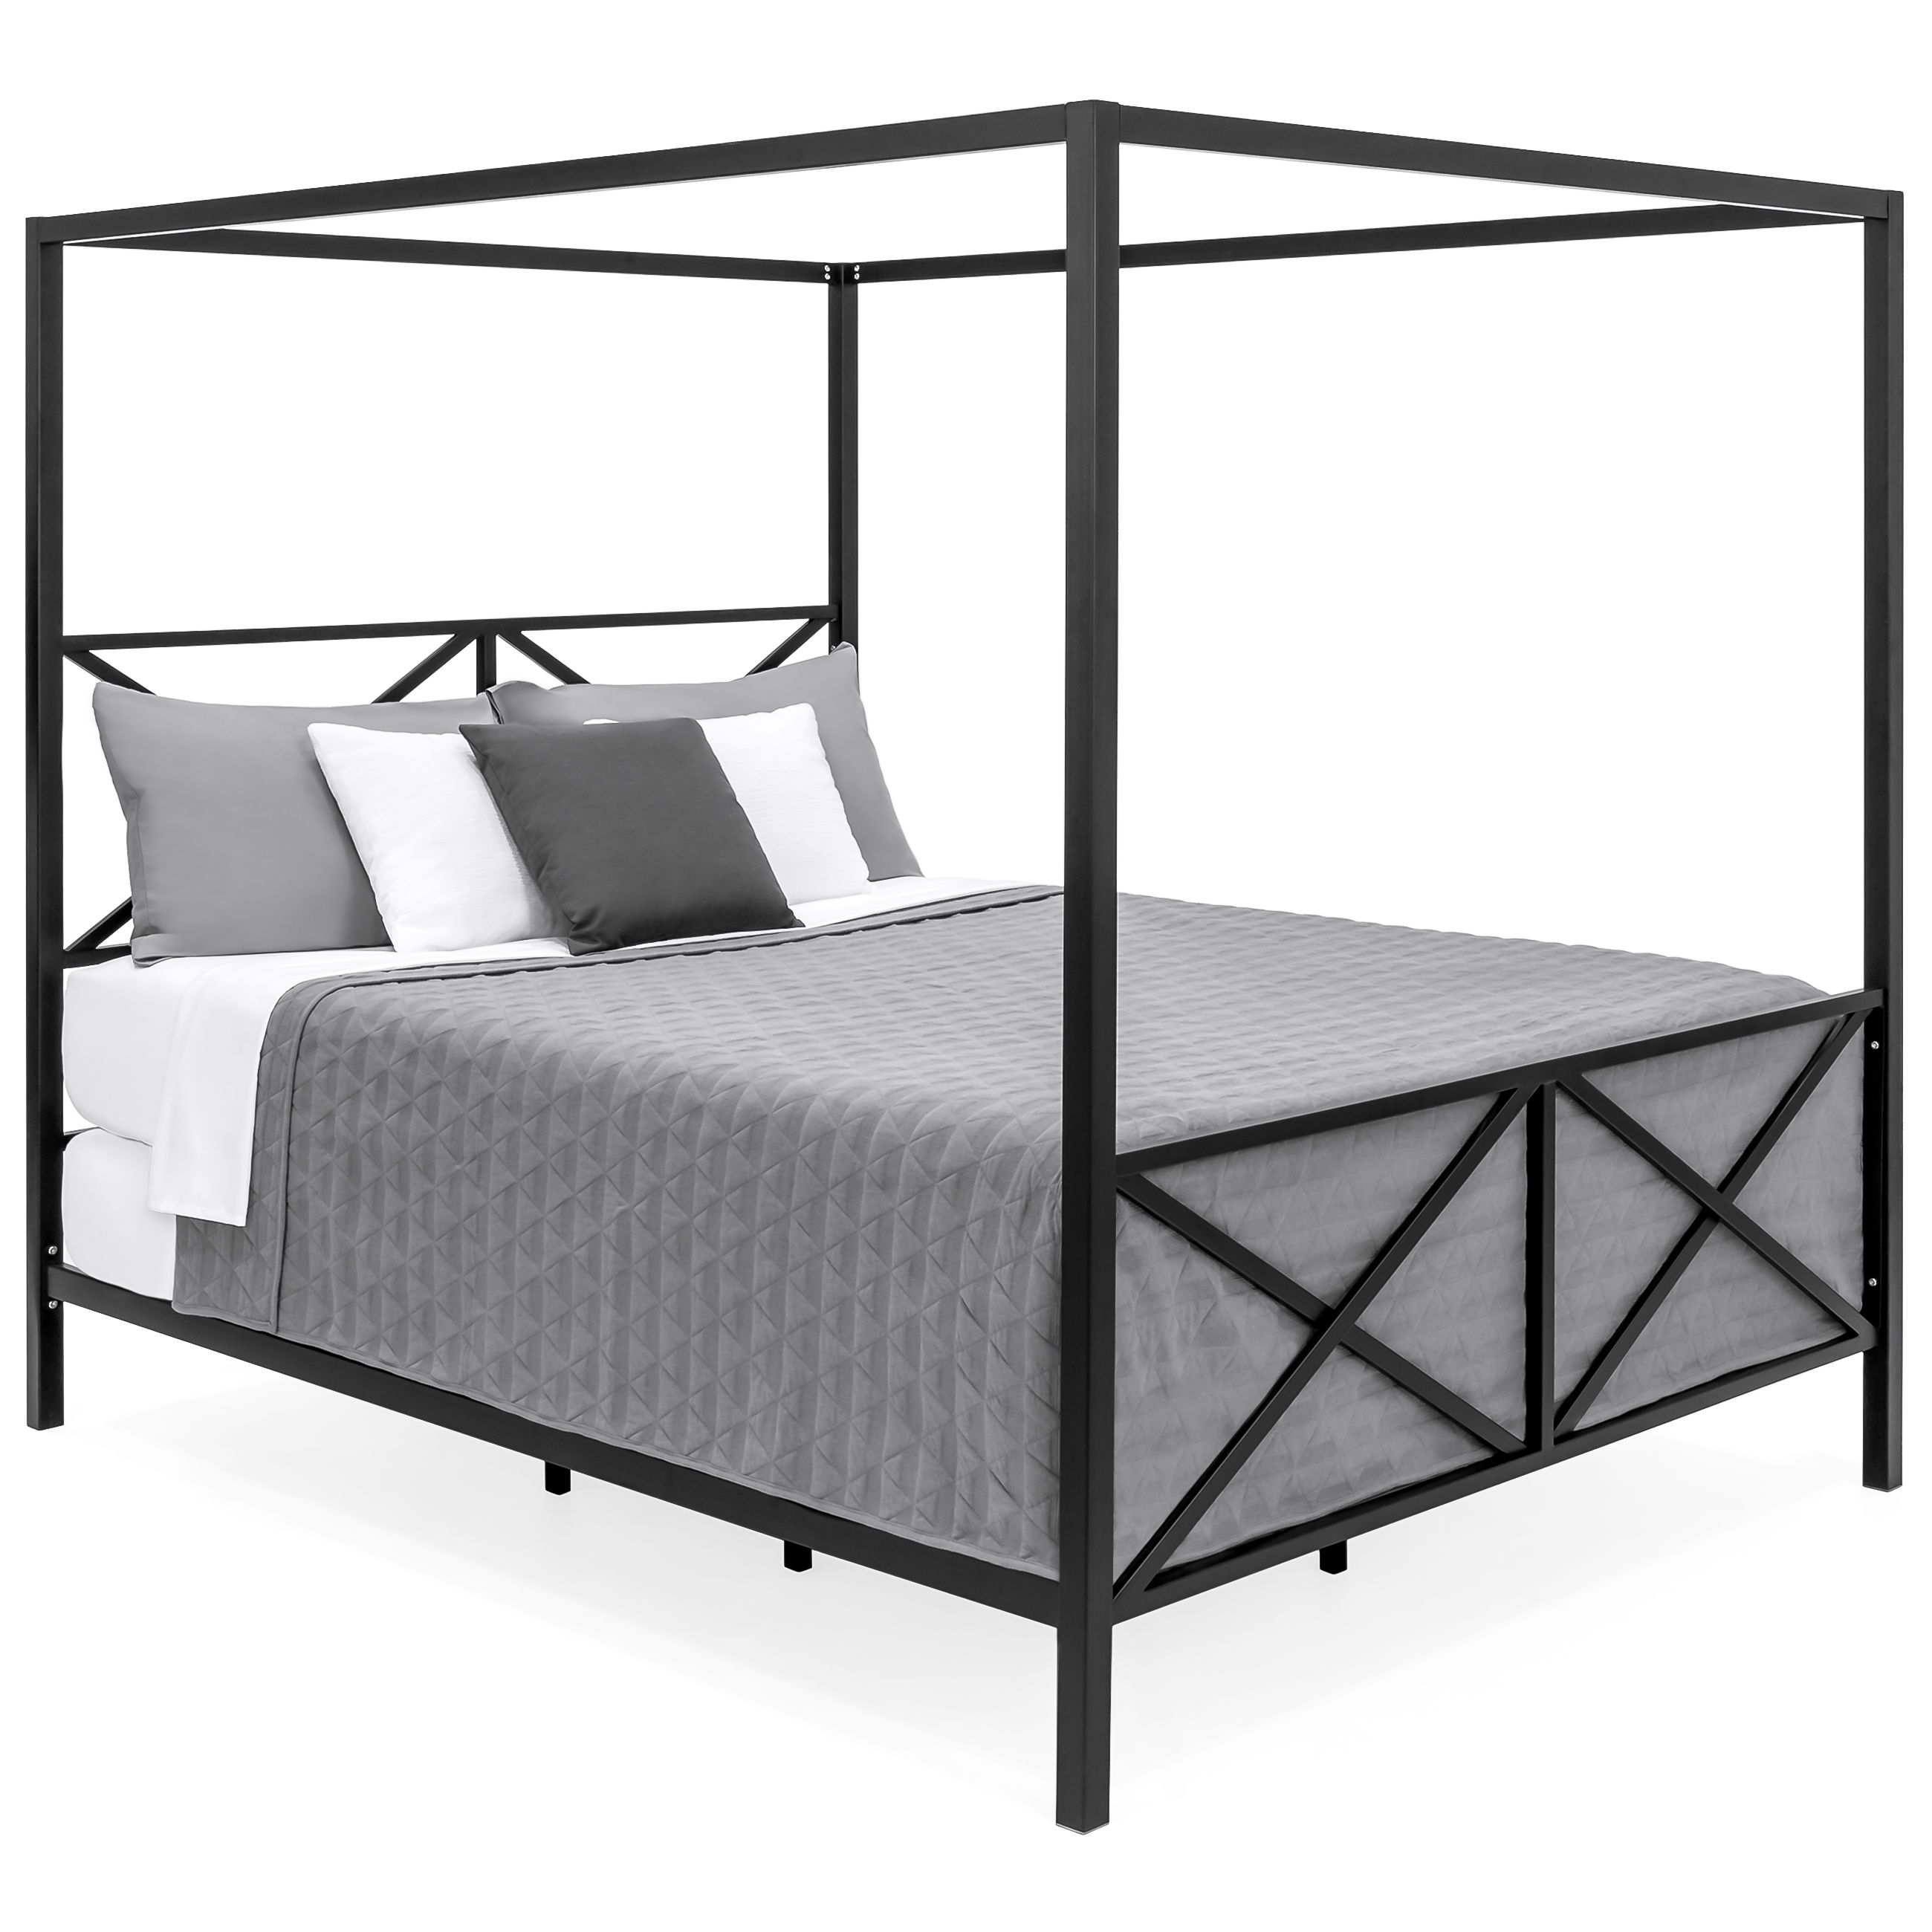 Grab The Best Of The Queen Bed Frame Decorifusta In 2020 Canopy Bed Frame Bed Frame And Headboard Queen Bed Frame